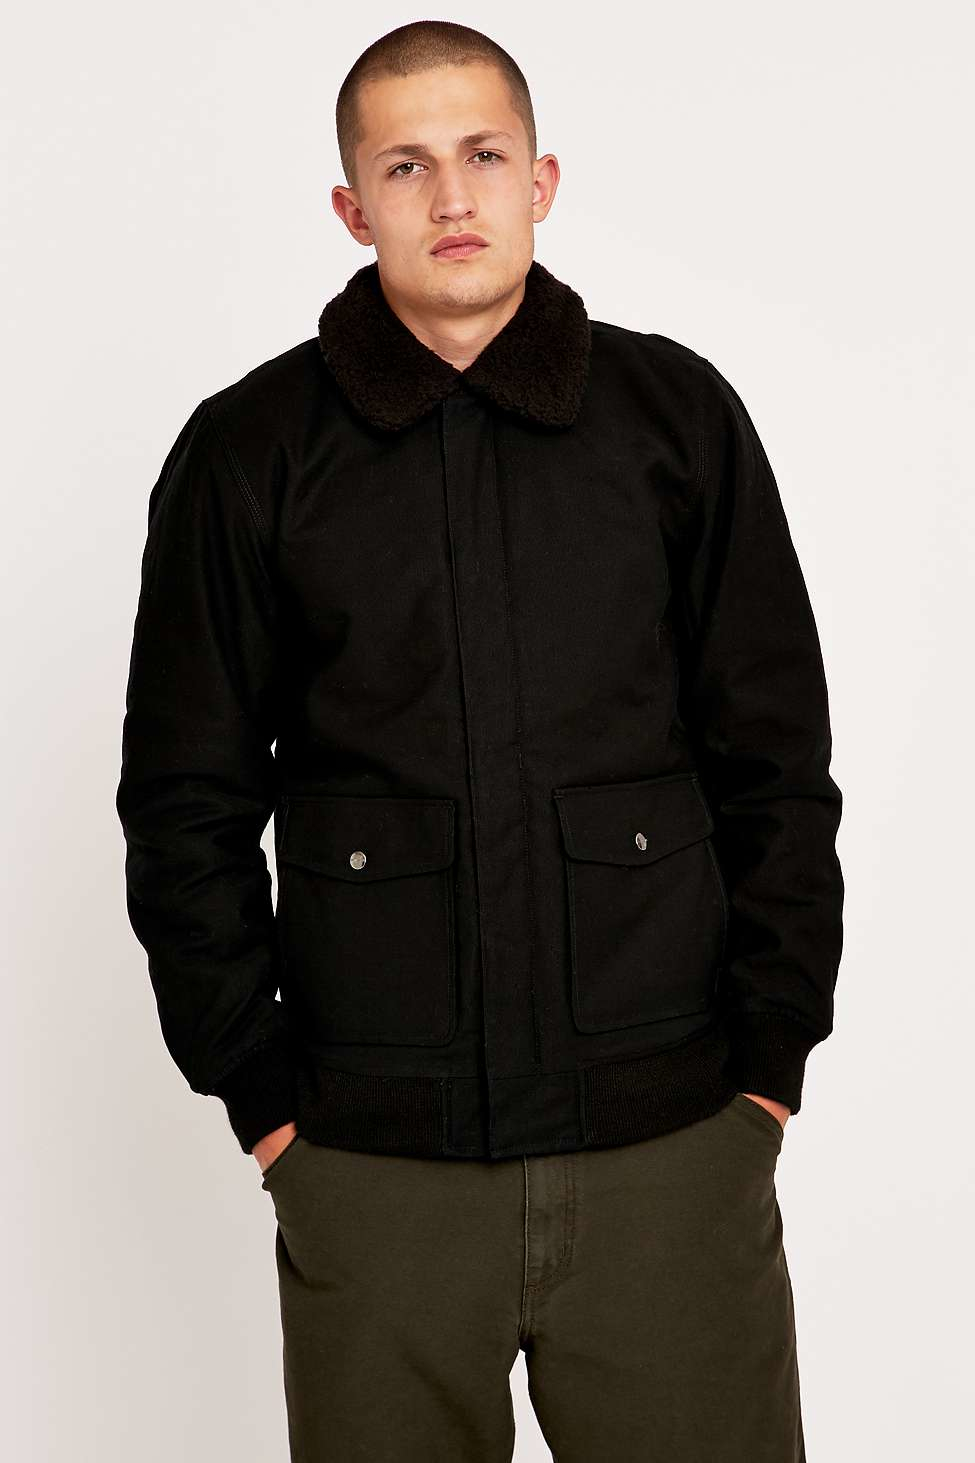 Carhartt Monroe Black Jacket for Men